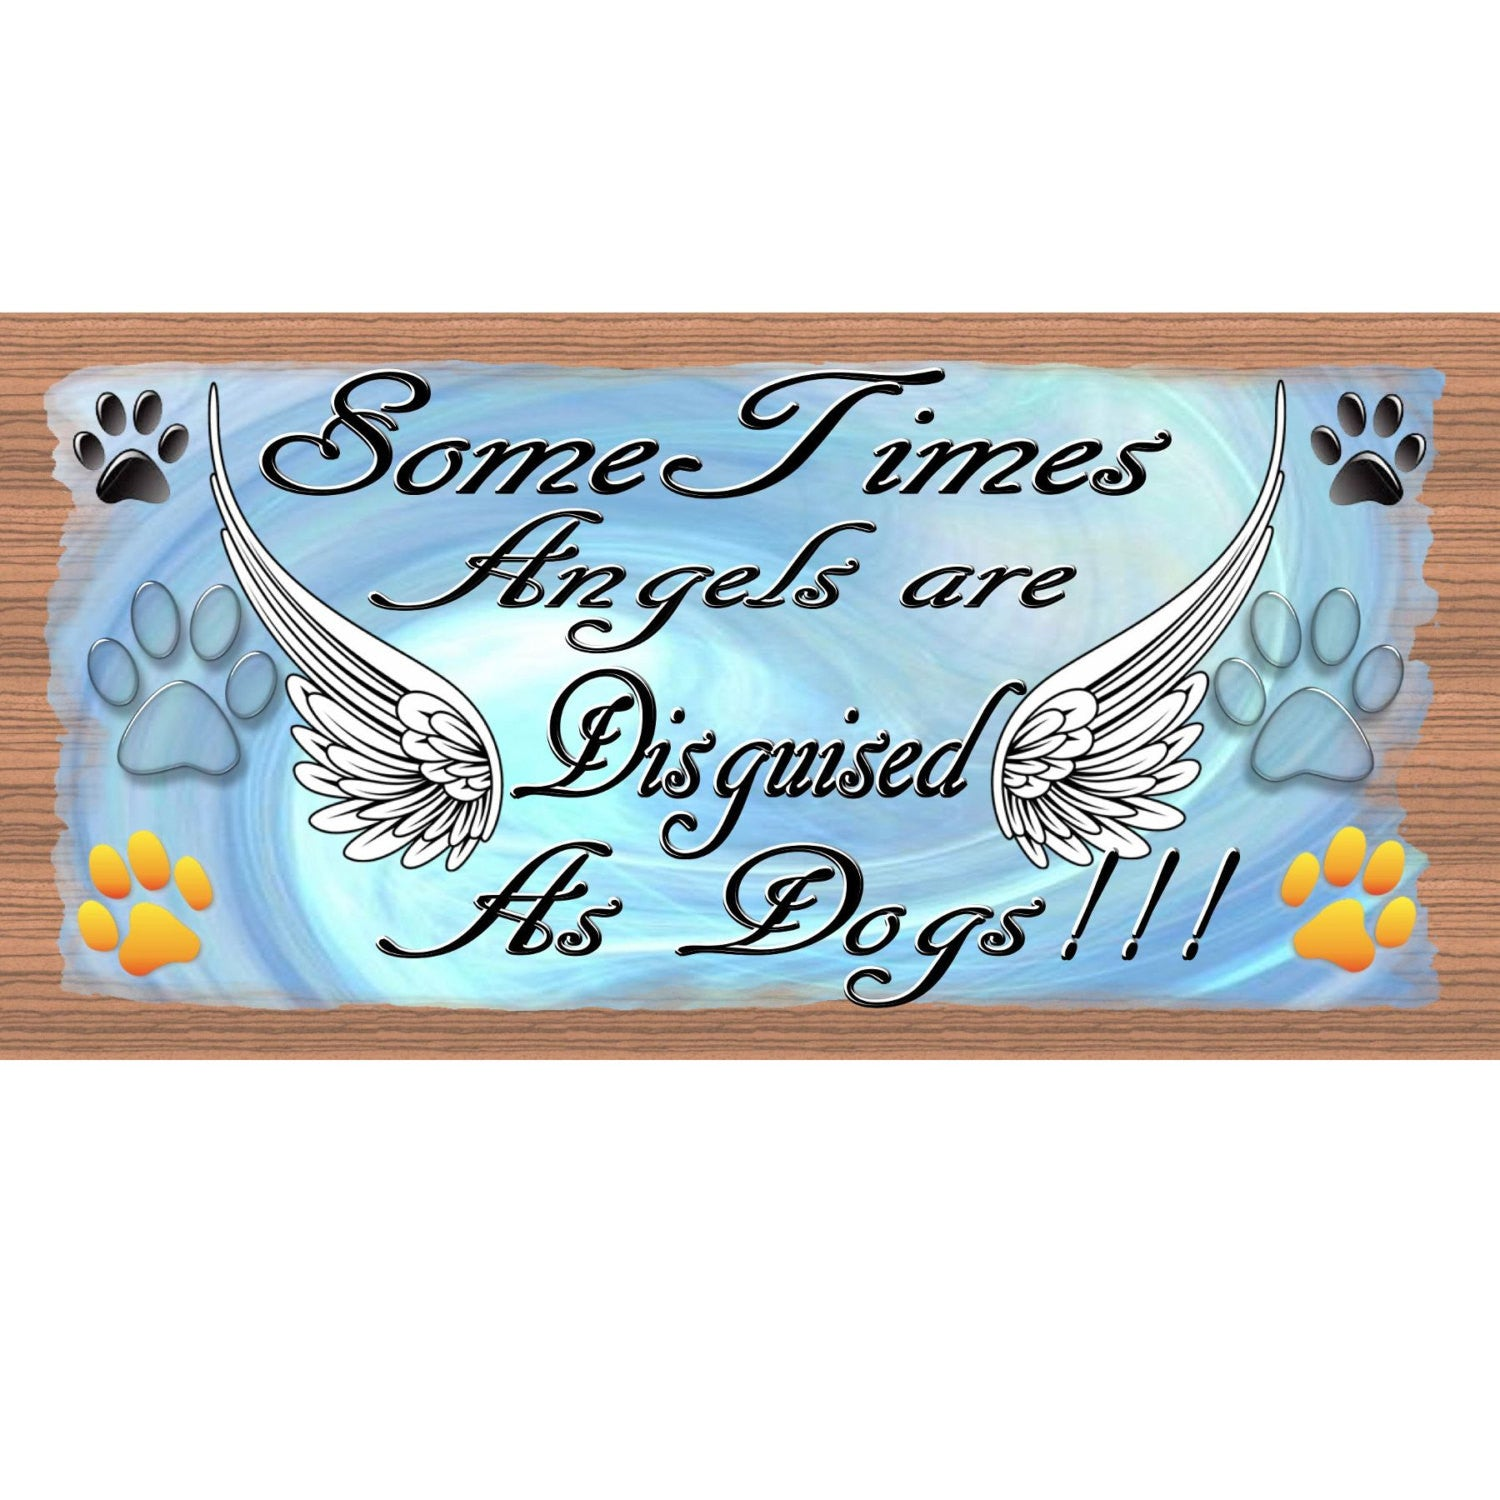 Dog Wood Signs Dogs GS 2068 Wooden Signs Dogs - Dog plaque -Dog Sign